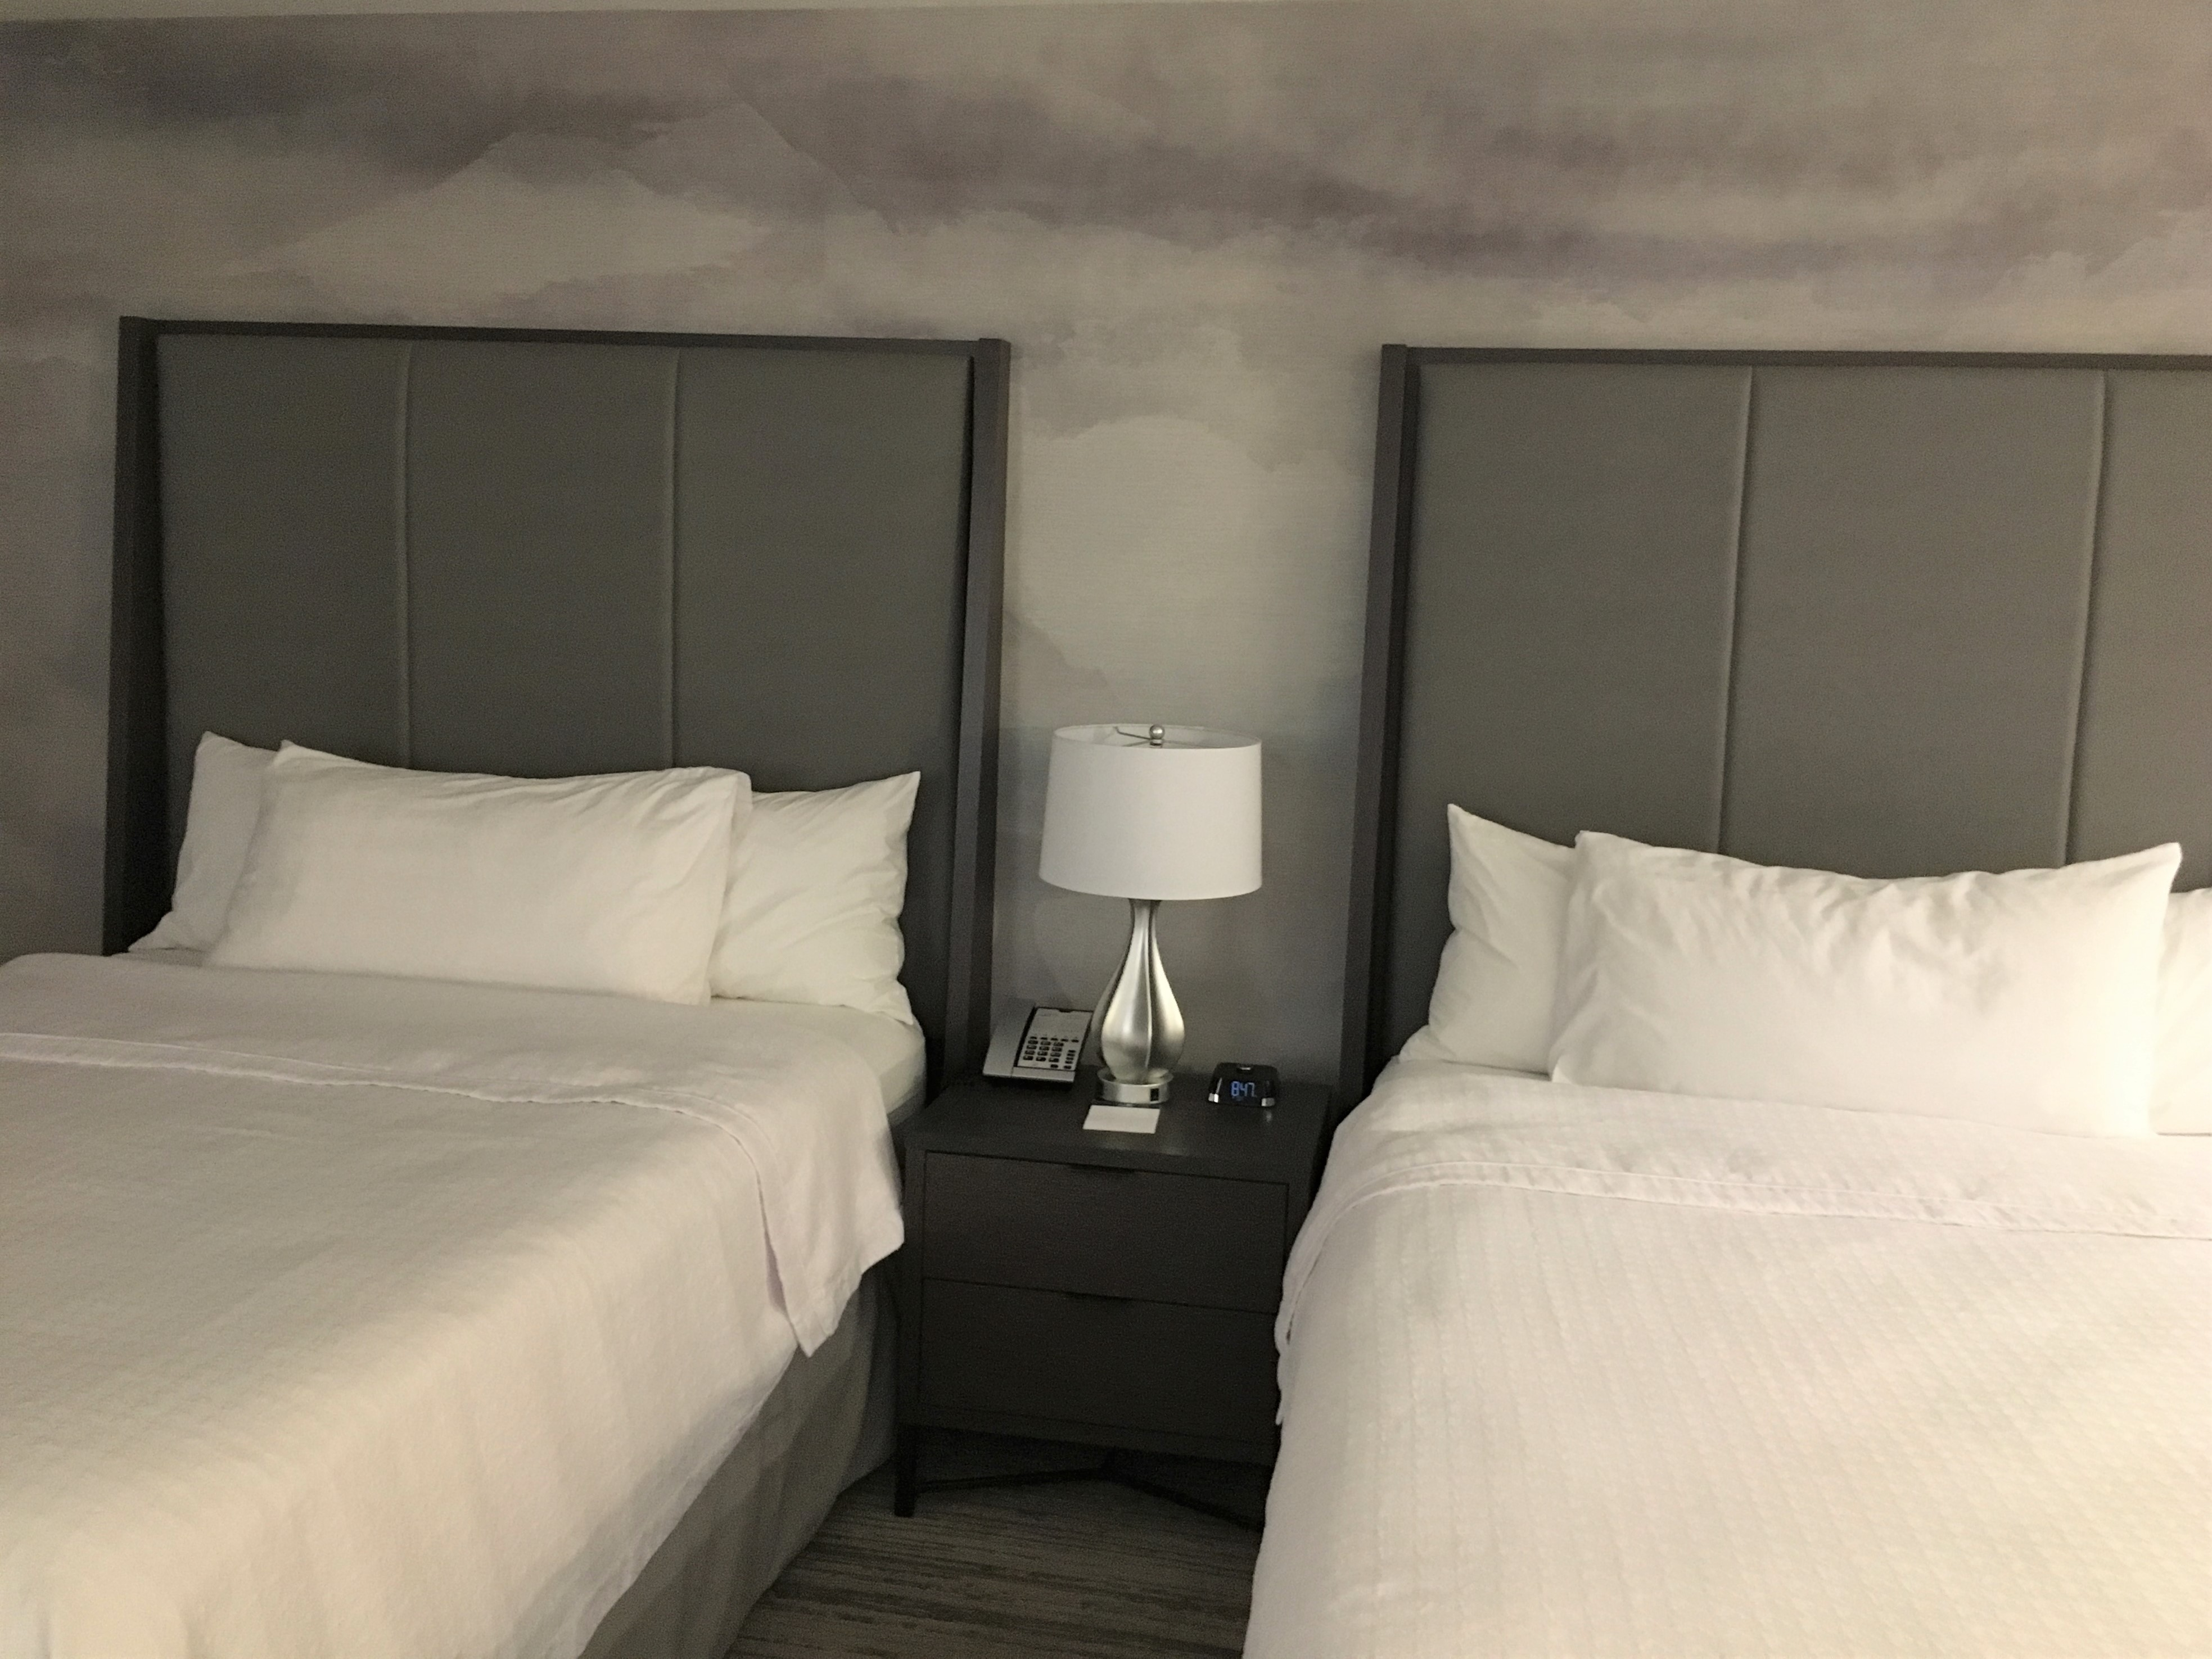 Homewood Suites by Hilton Needham Boston Guest Room